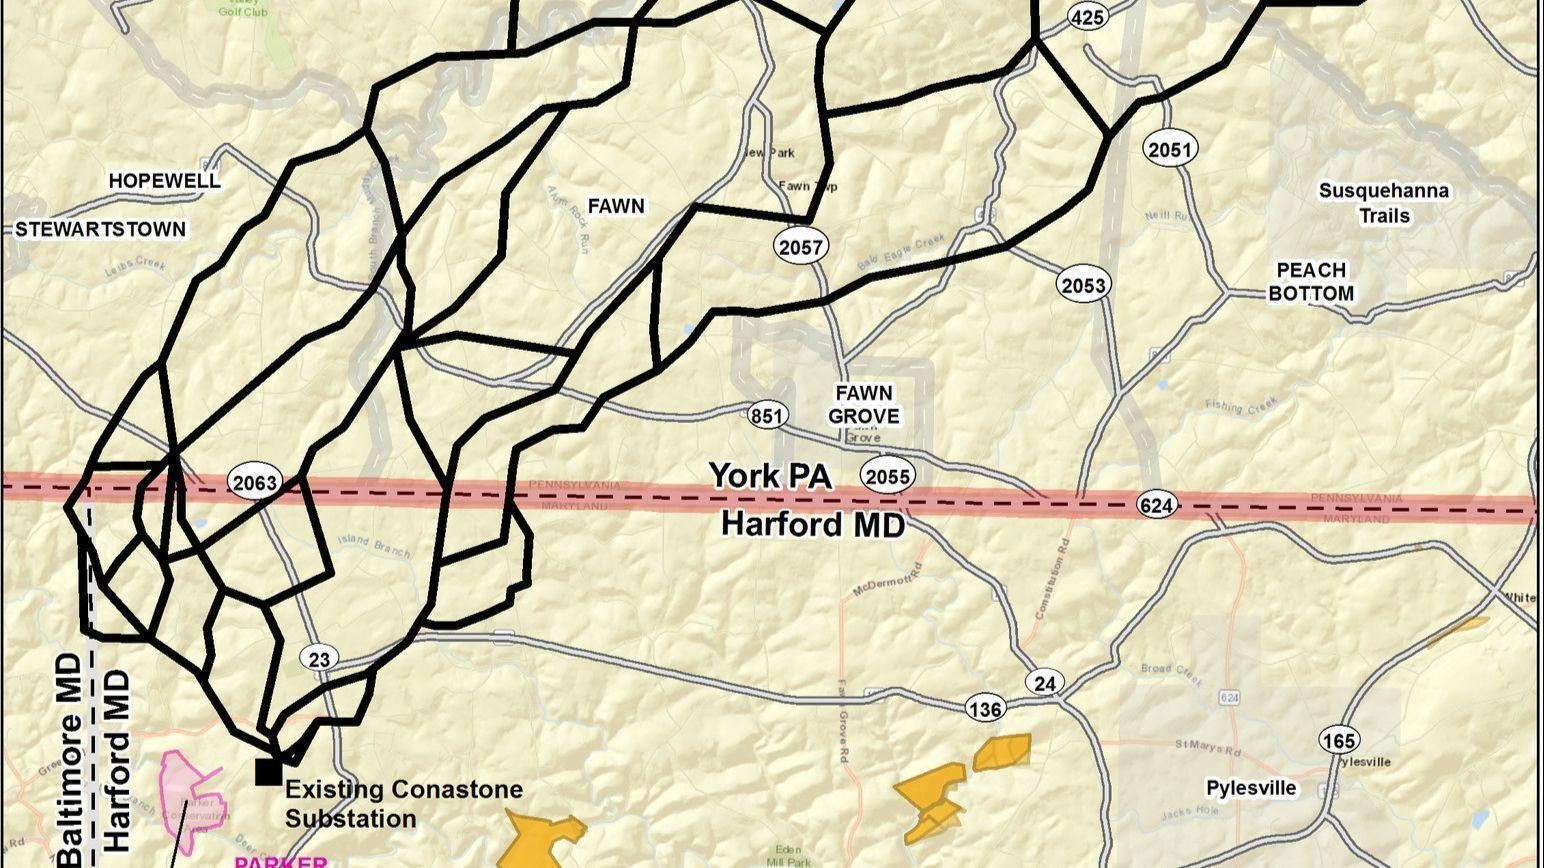 Hogan urges review of Transource power line project affecting ... on